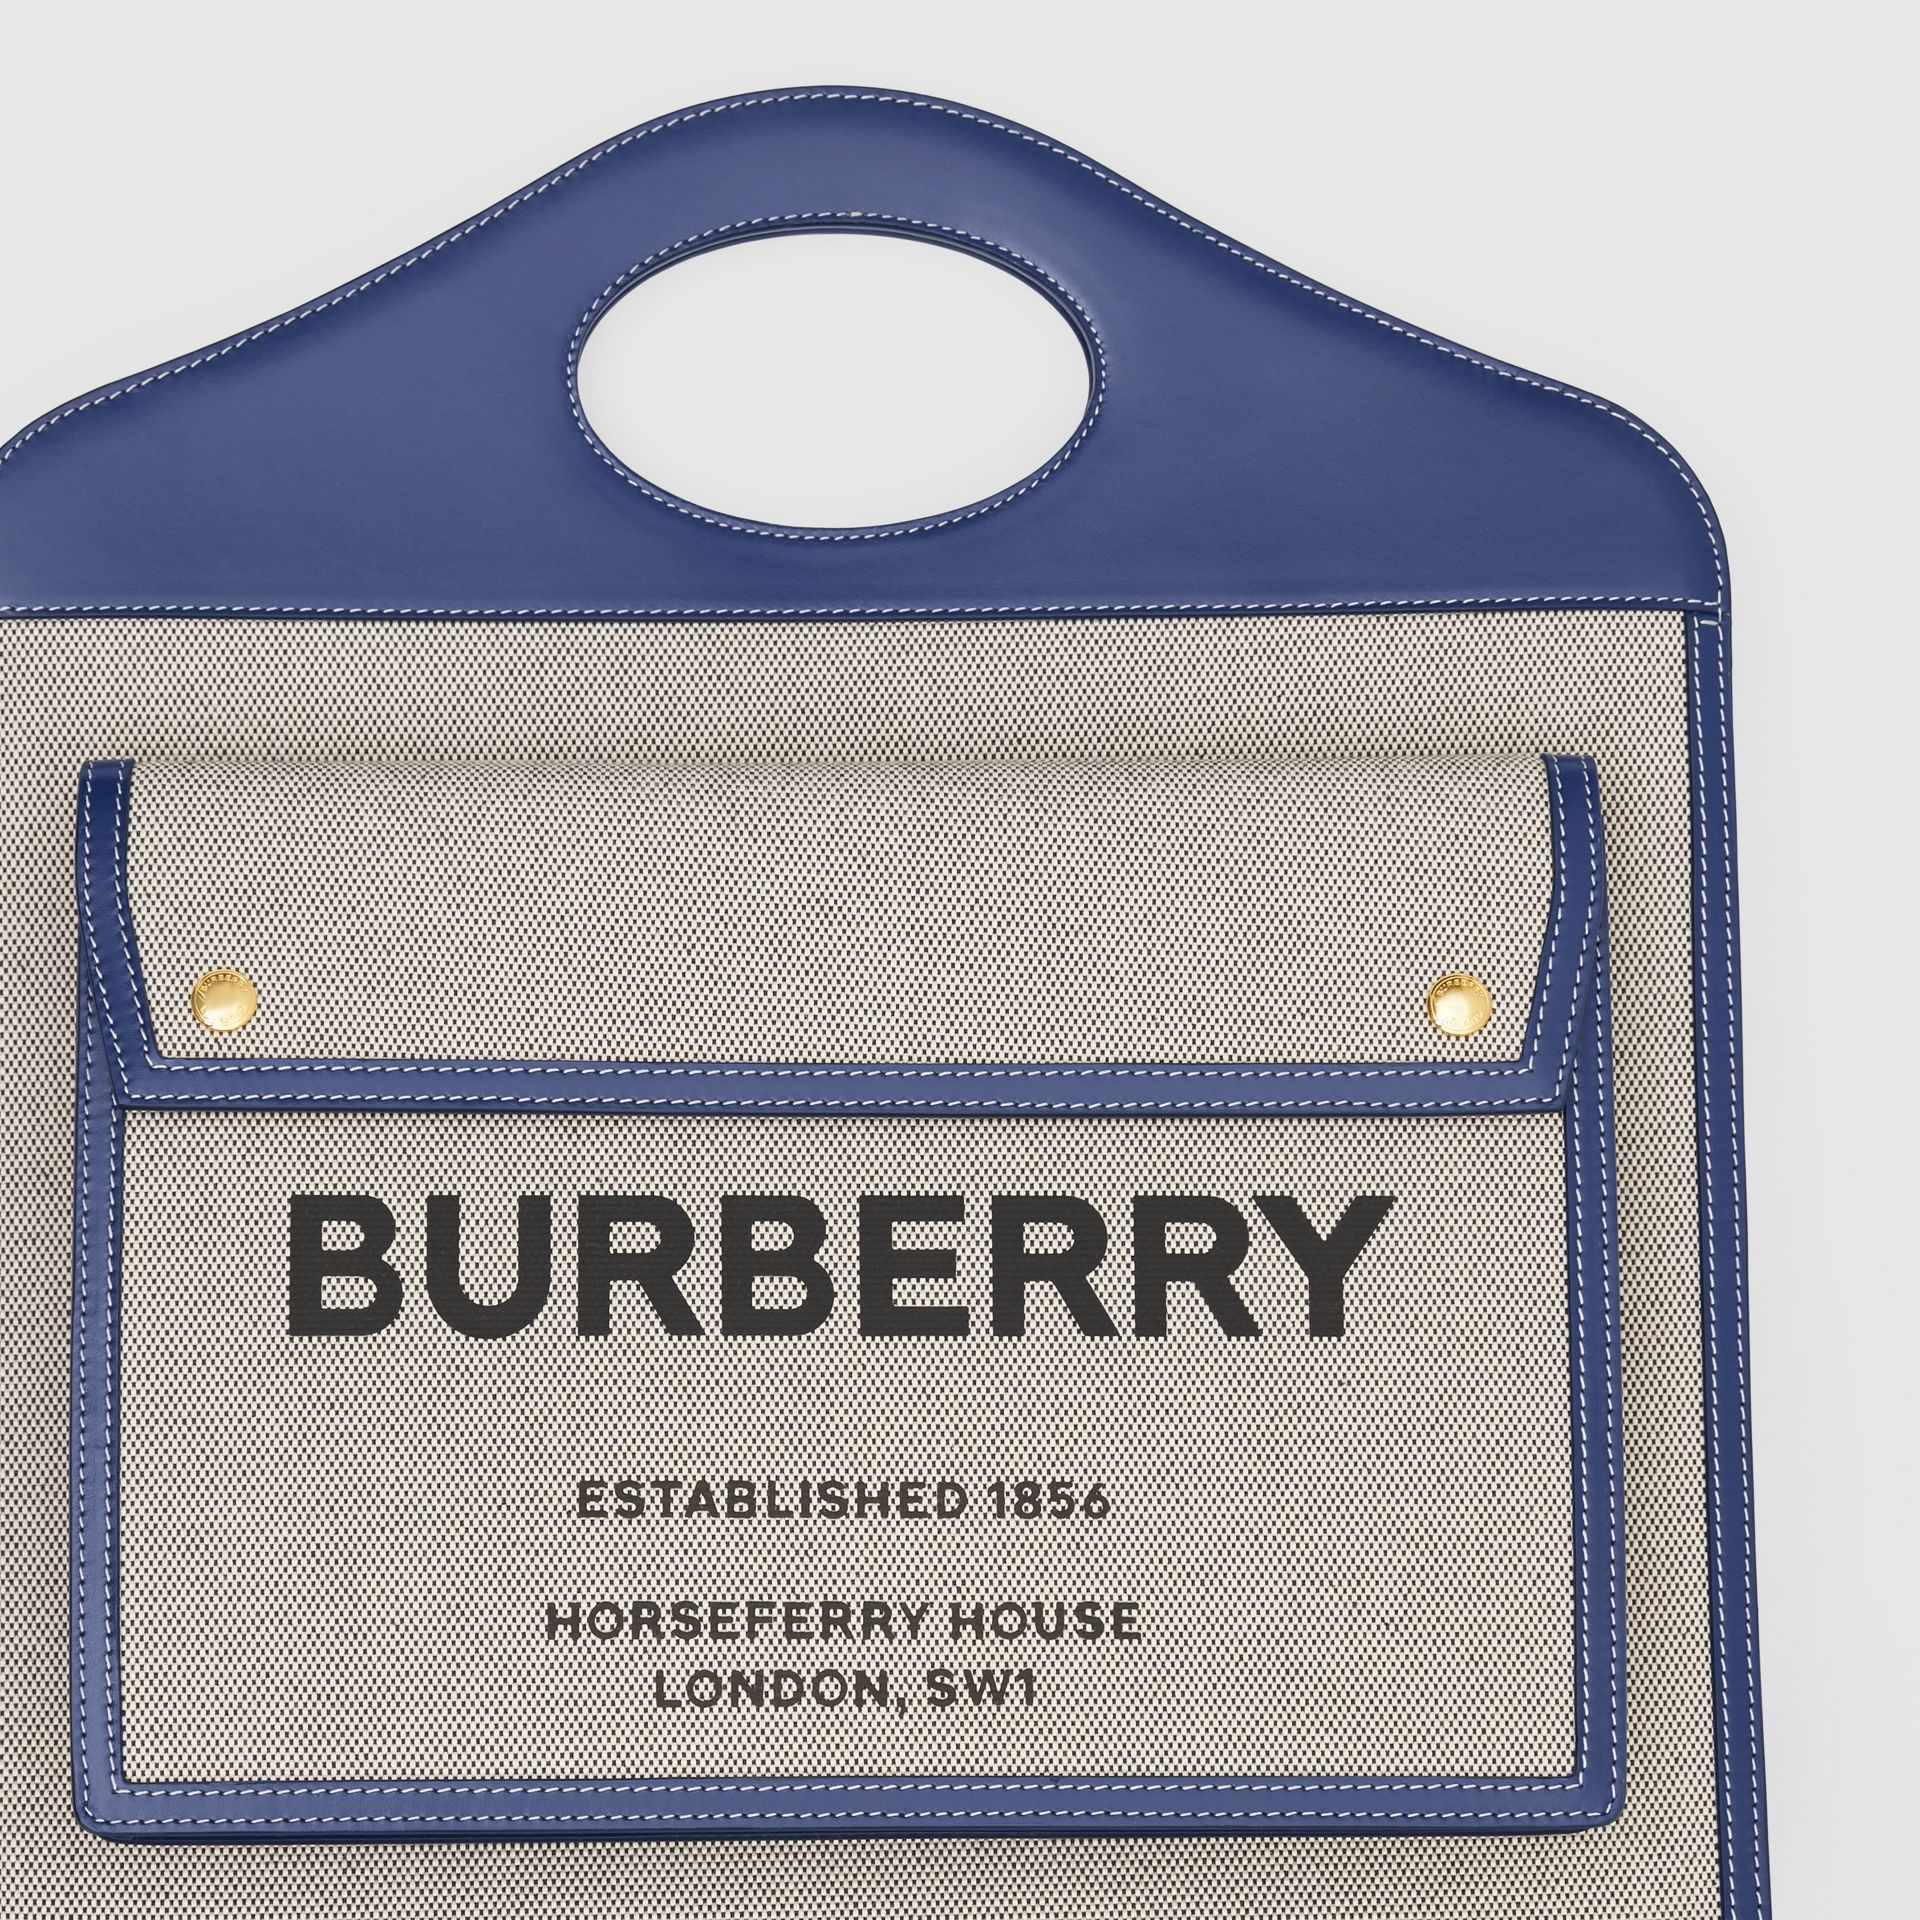 Medium Two-tone Canvas and Leather Pocket Bag in Ink Navy - Women | Burberry - gallery image 1